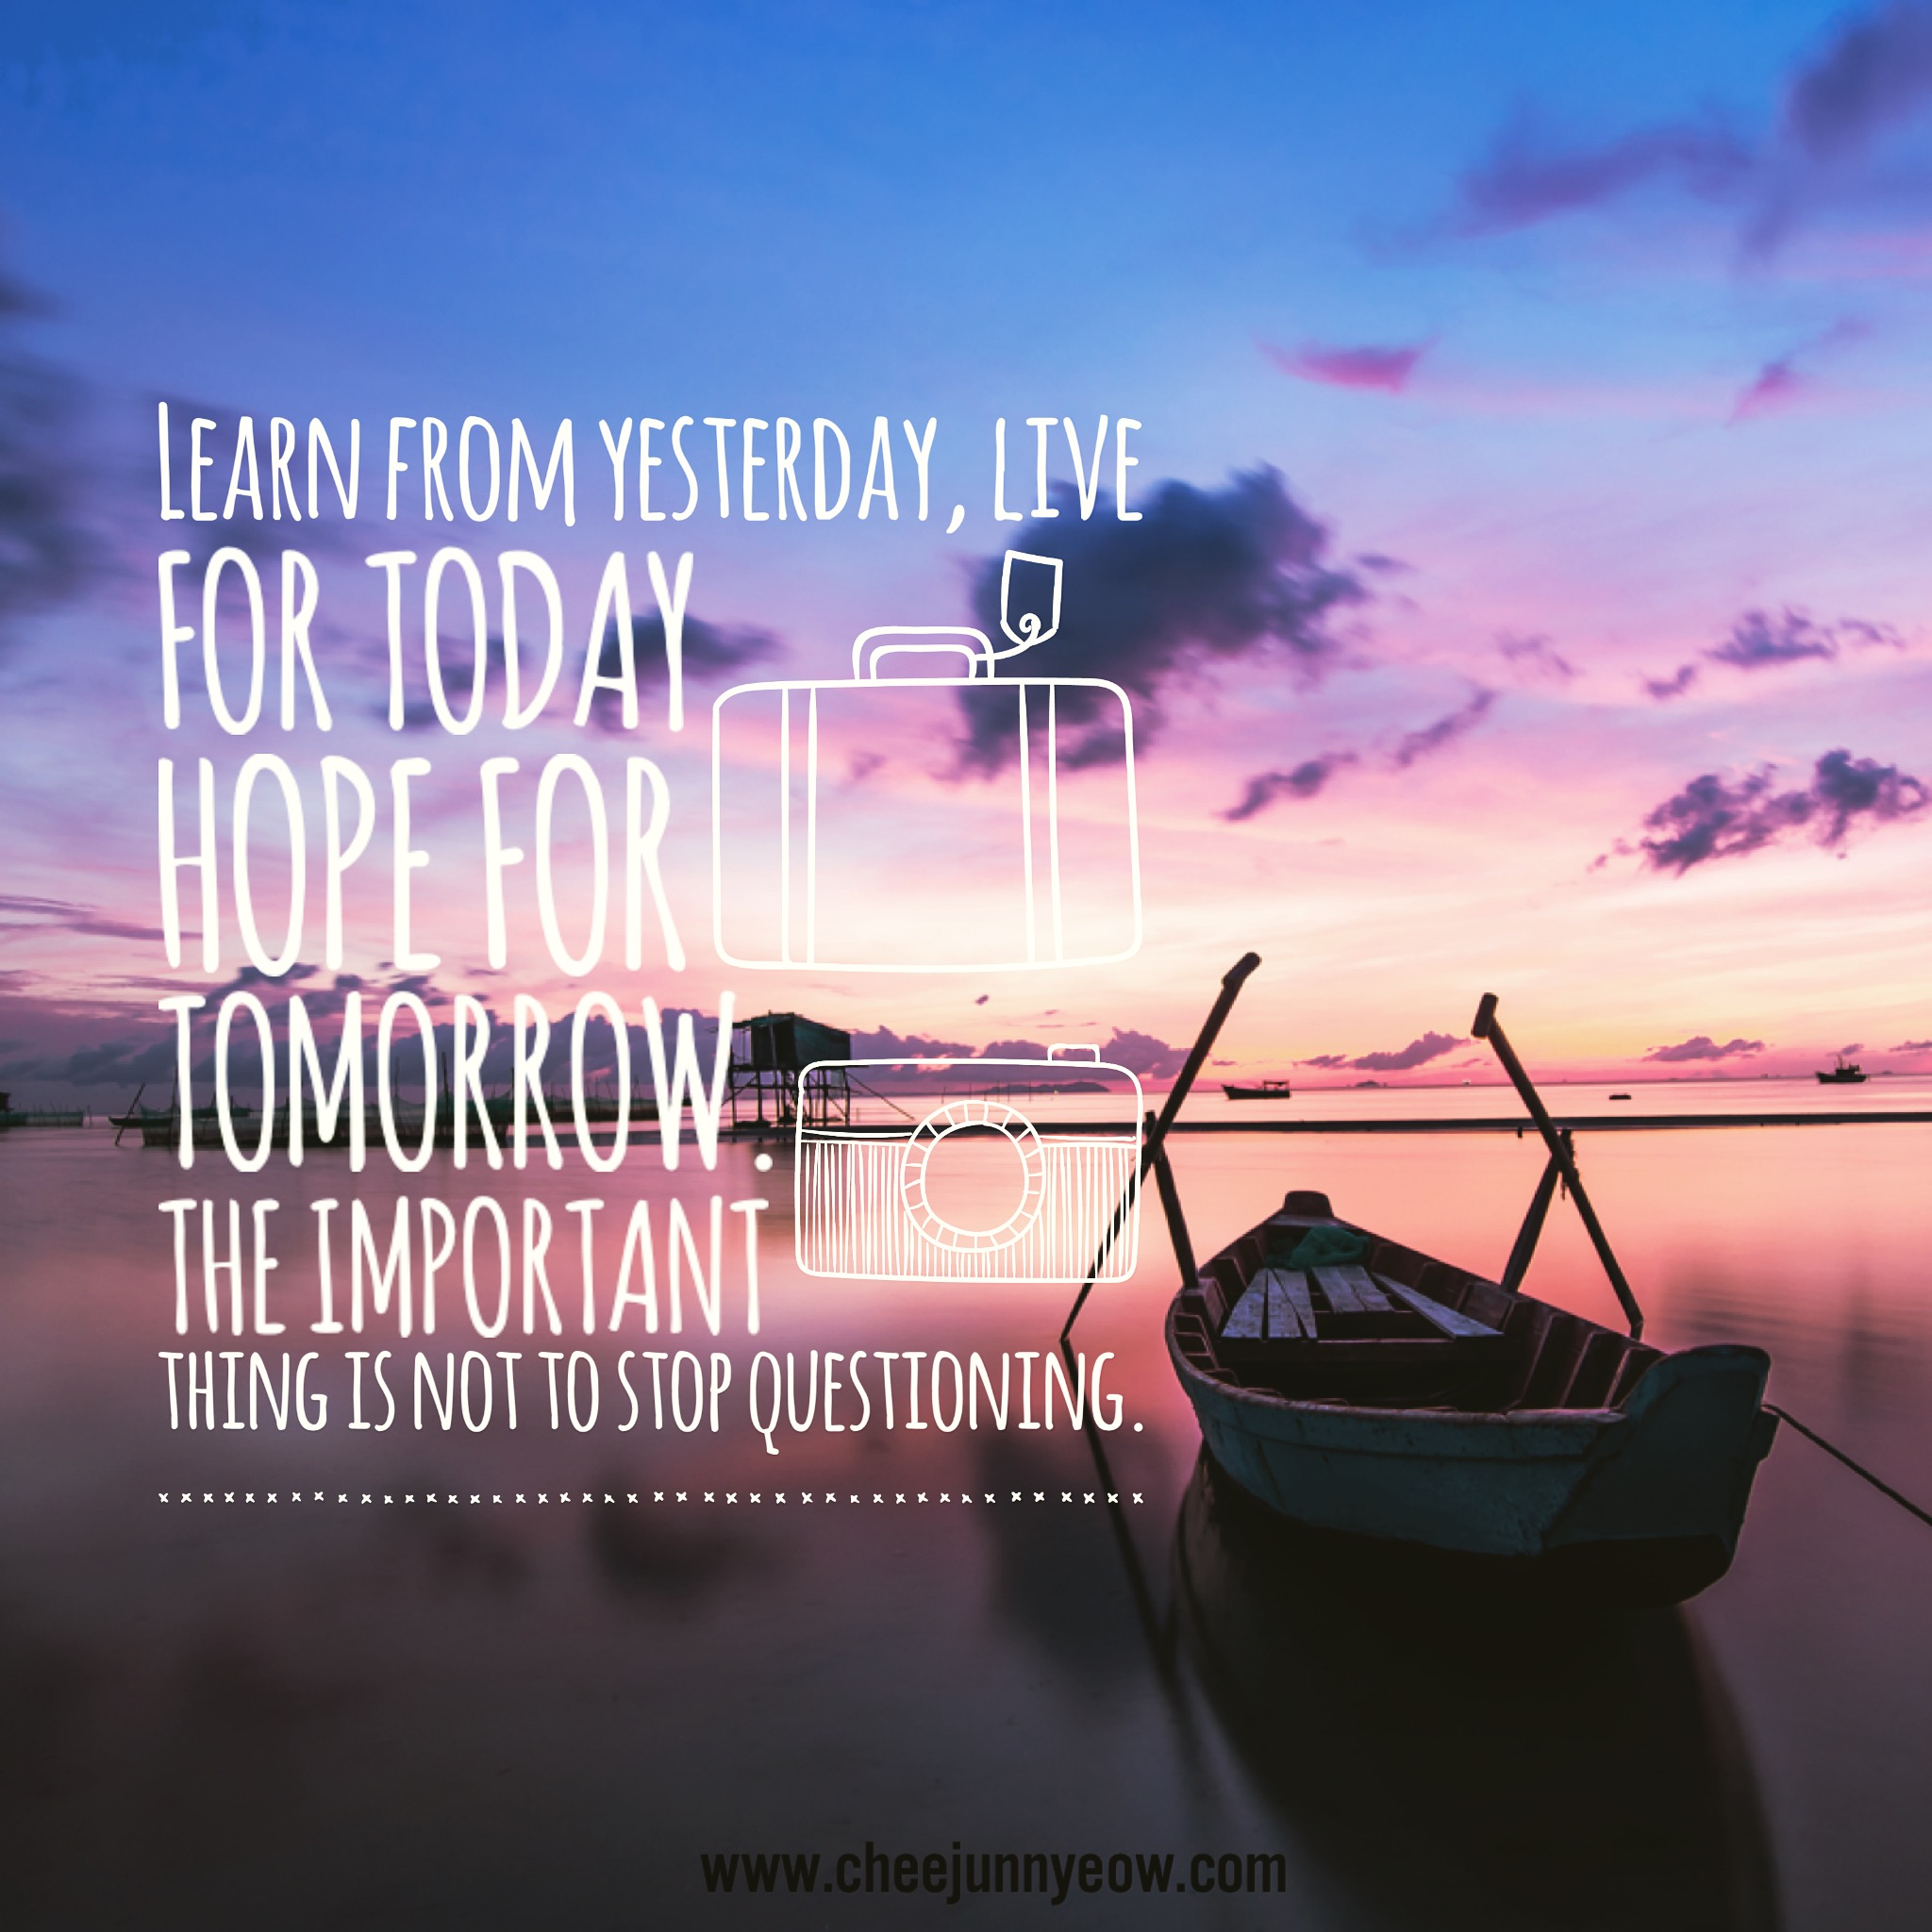 learn from yesterday. live for today, hope for tomorrow. the important thing is not to stop questioning